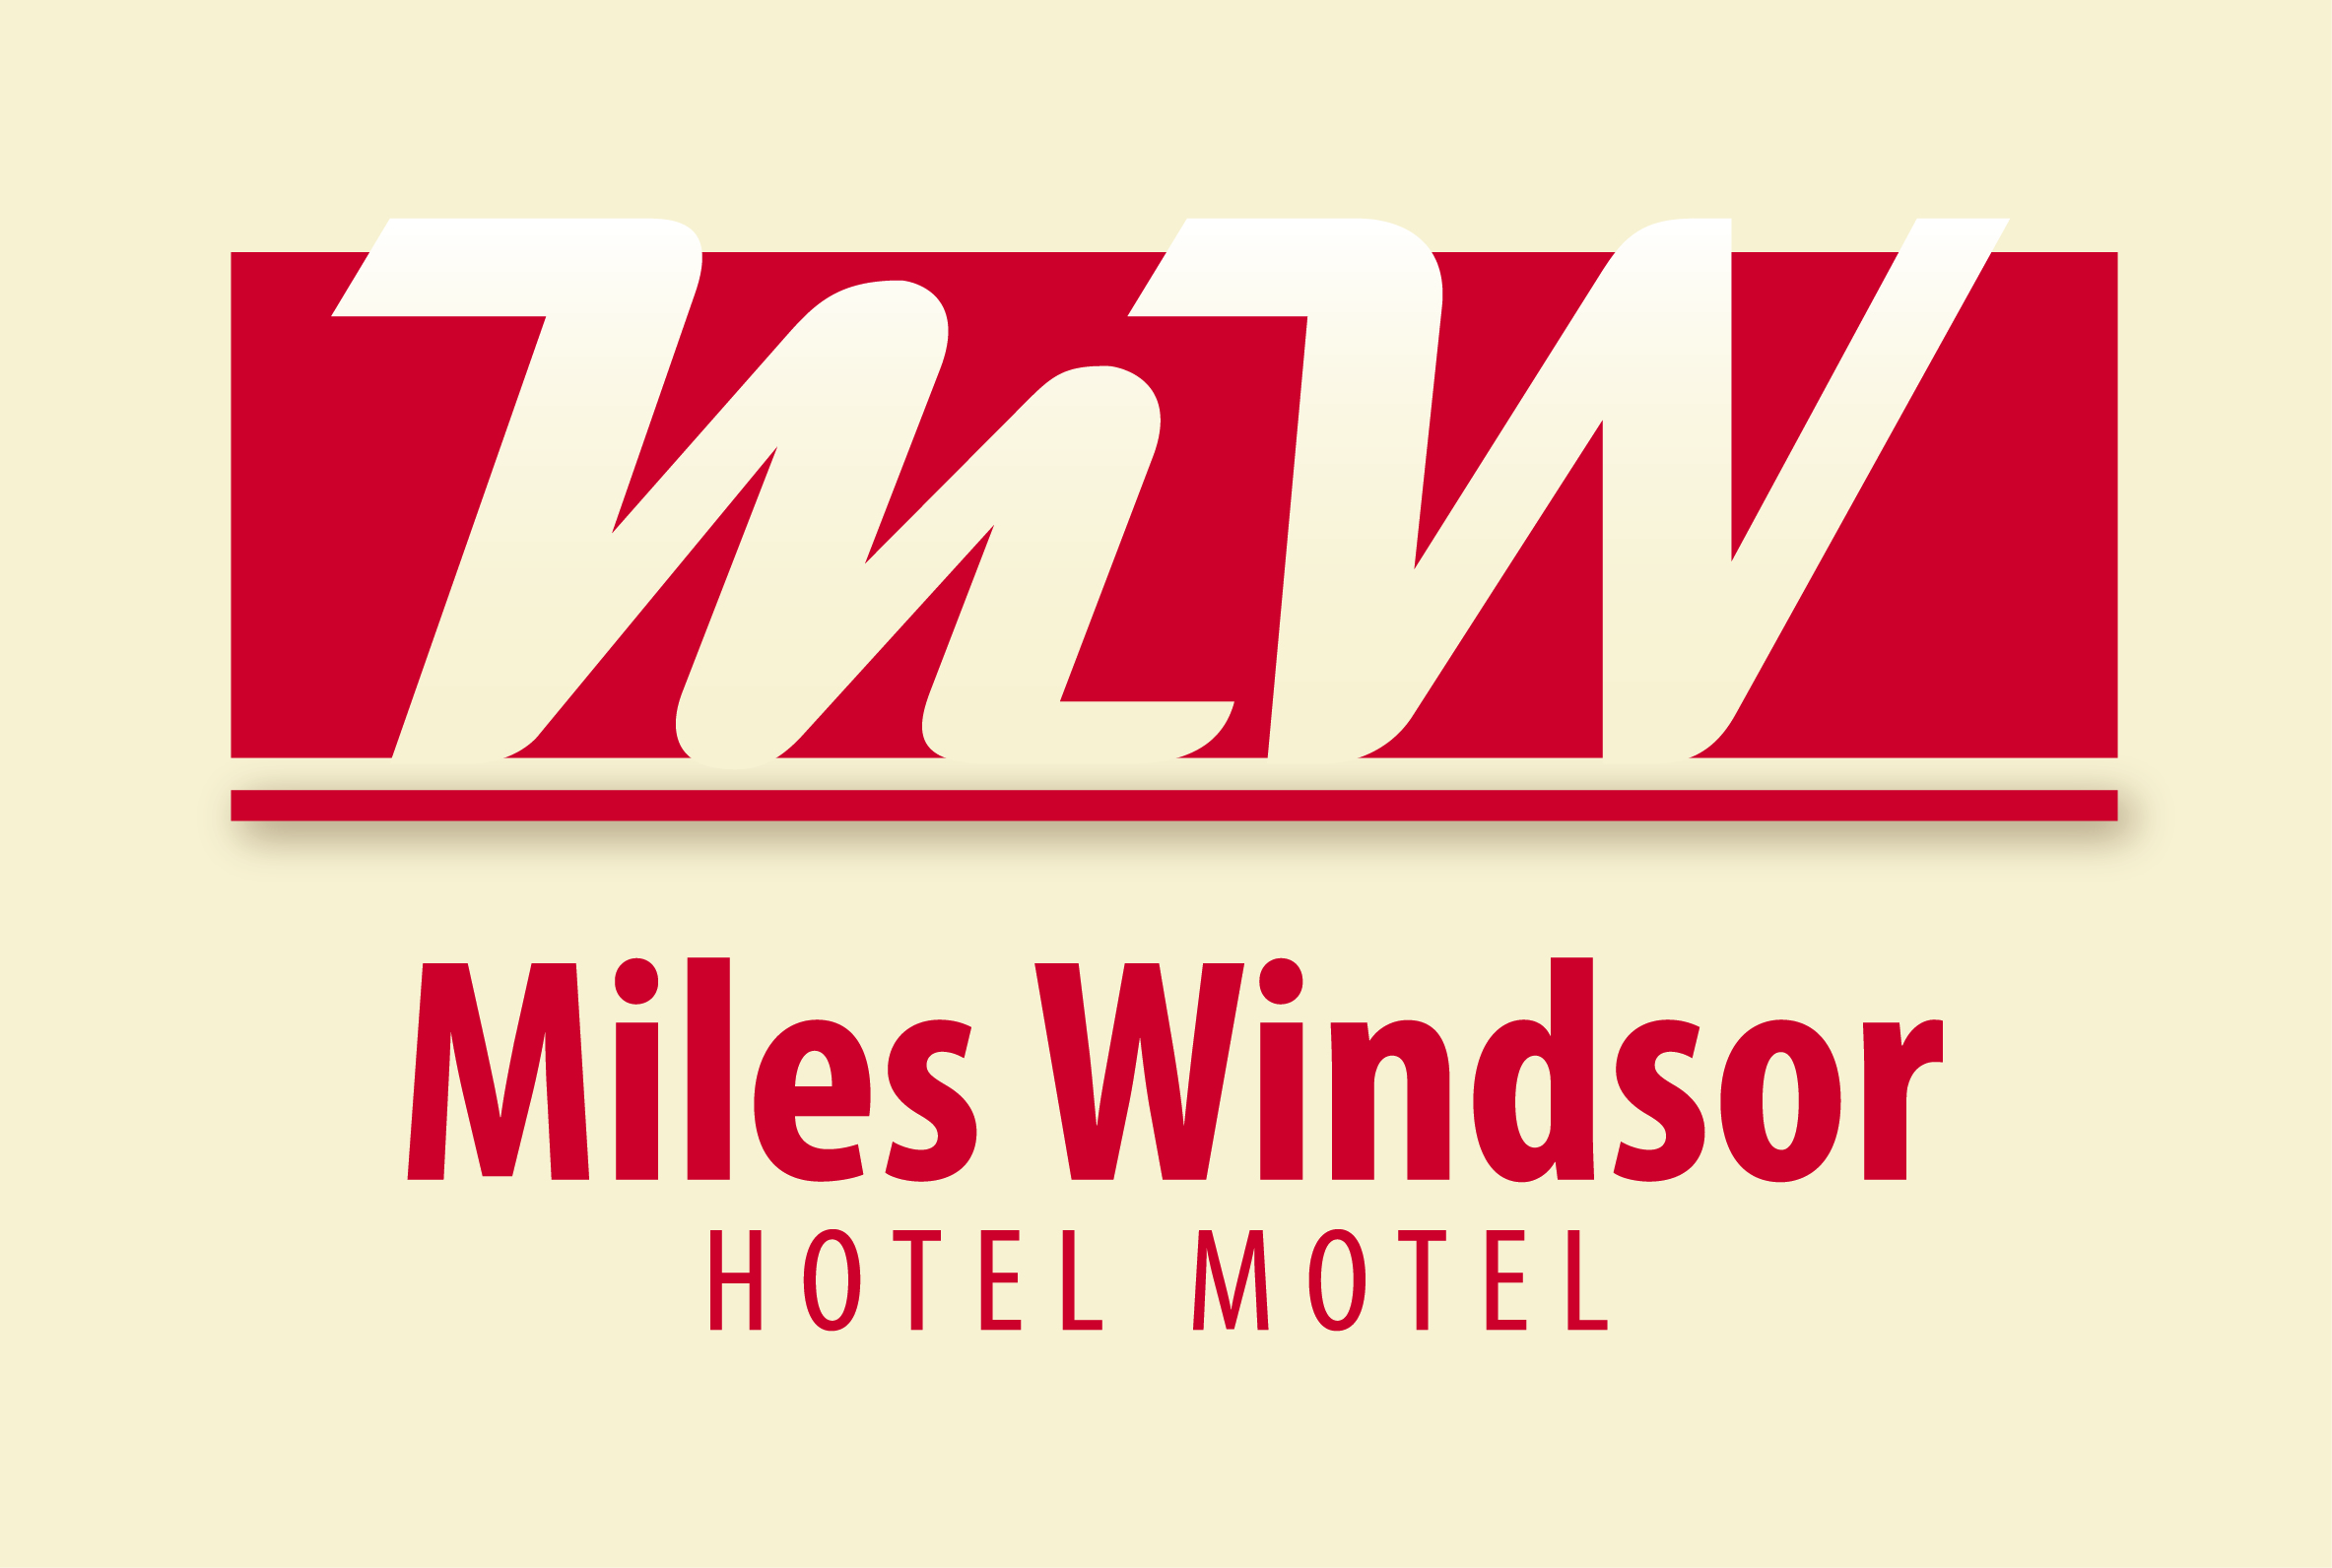 Miles Windsor Hotel Motel Logo and Images